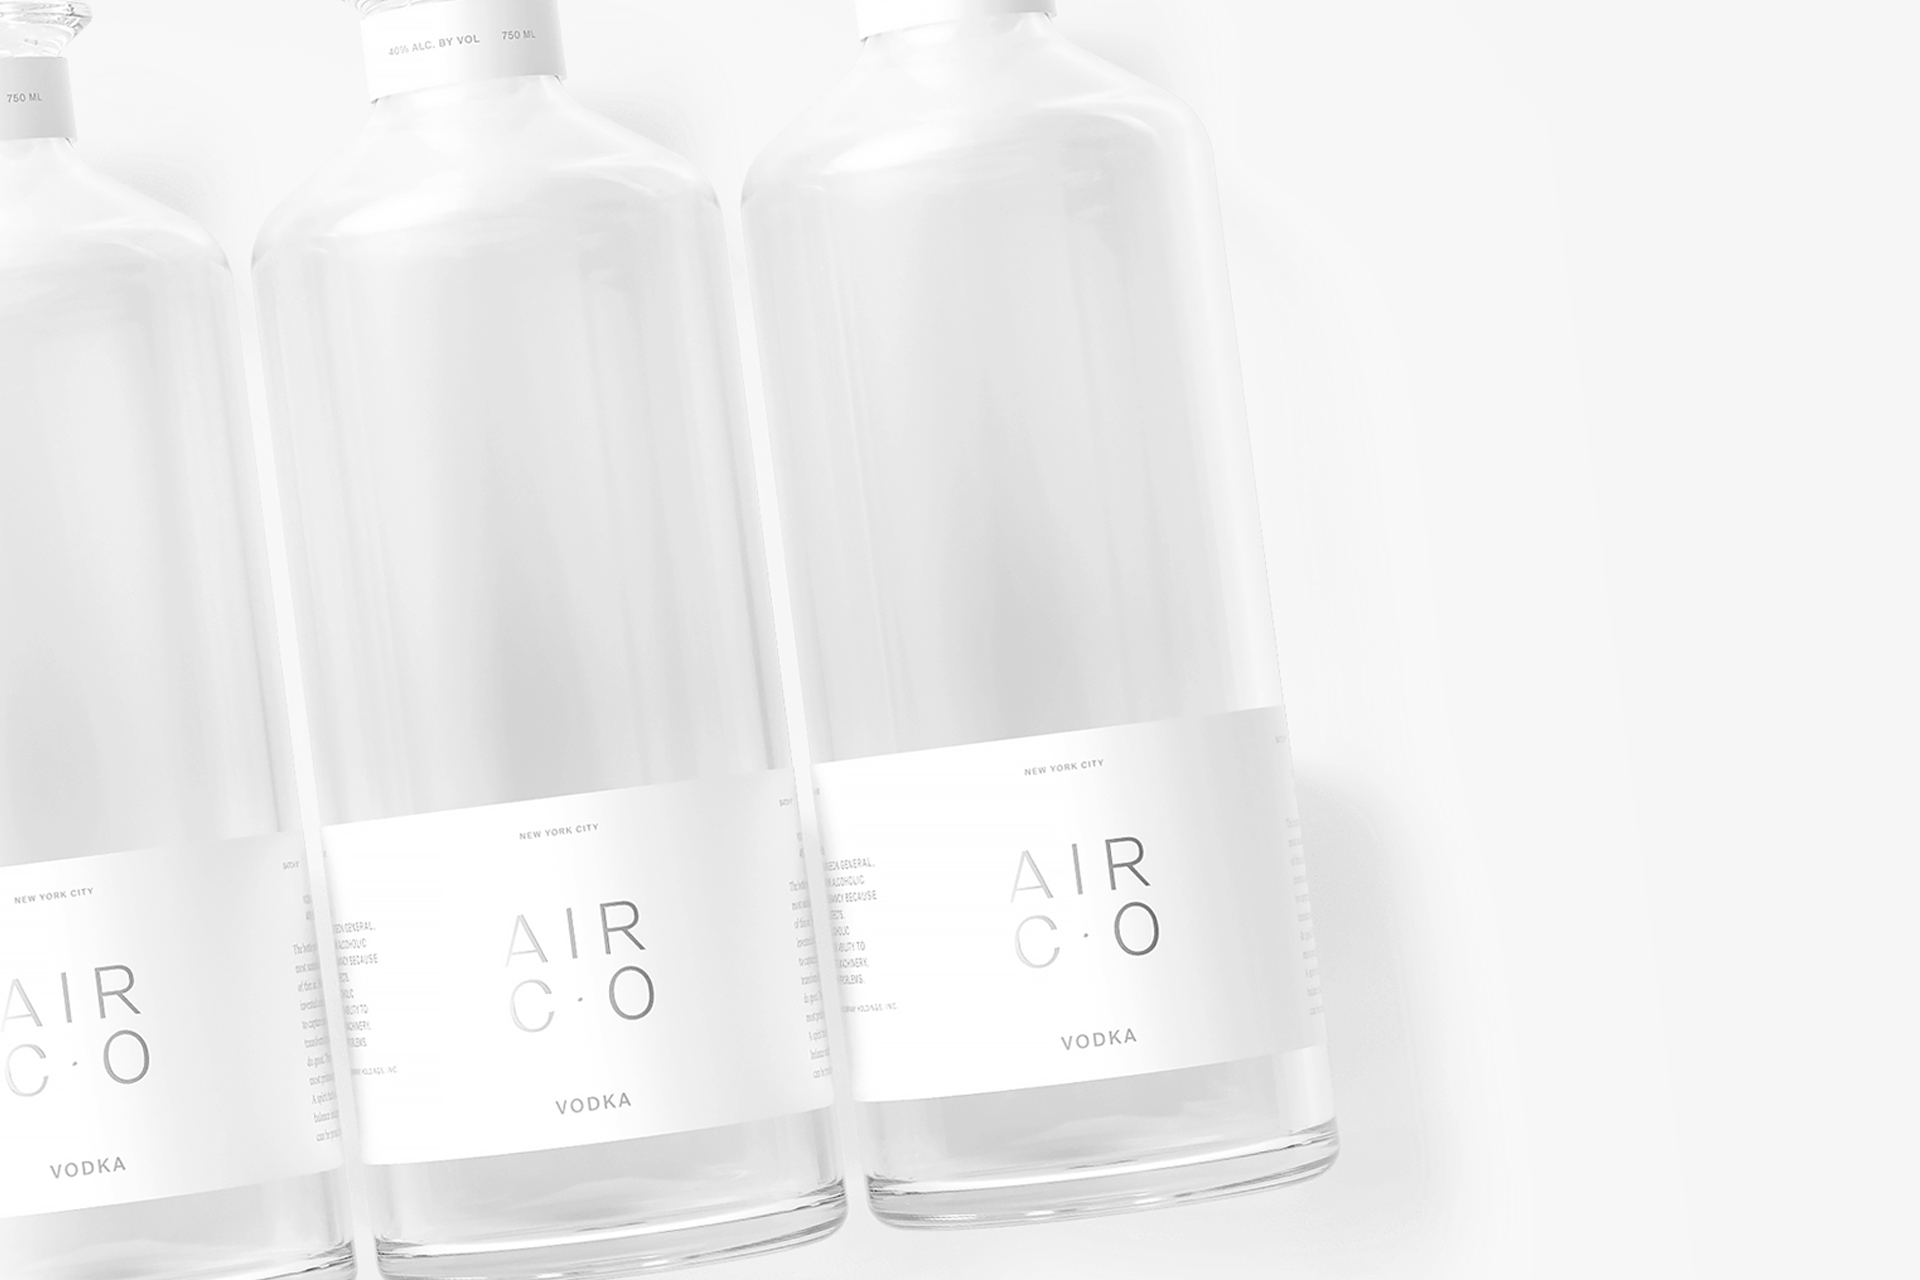 Air Co. Has Literally Created Vodka Out Of Thin Air Using CO2